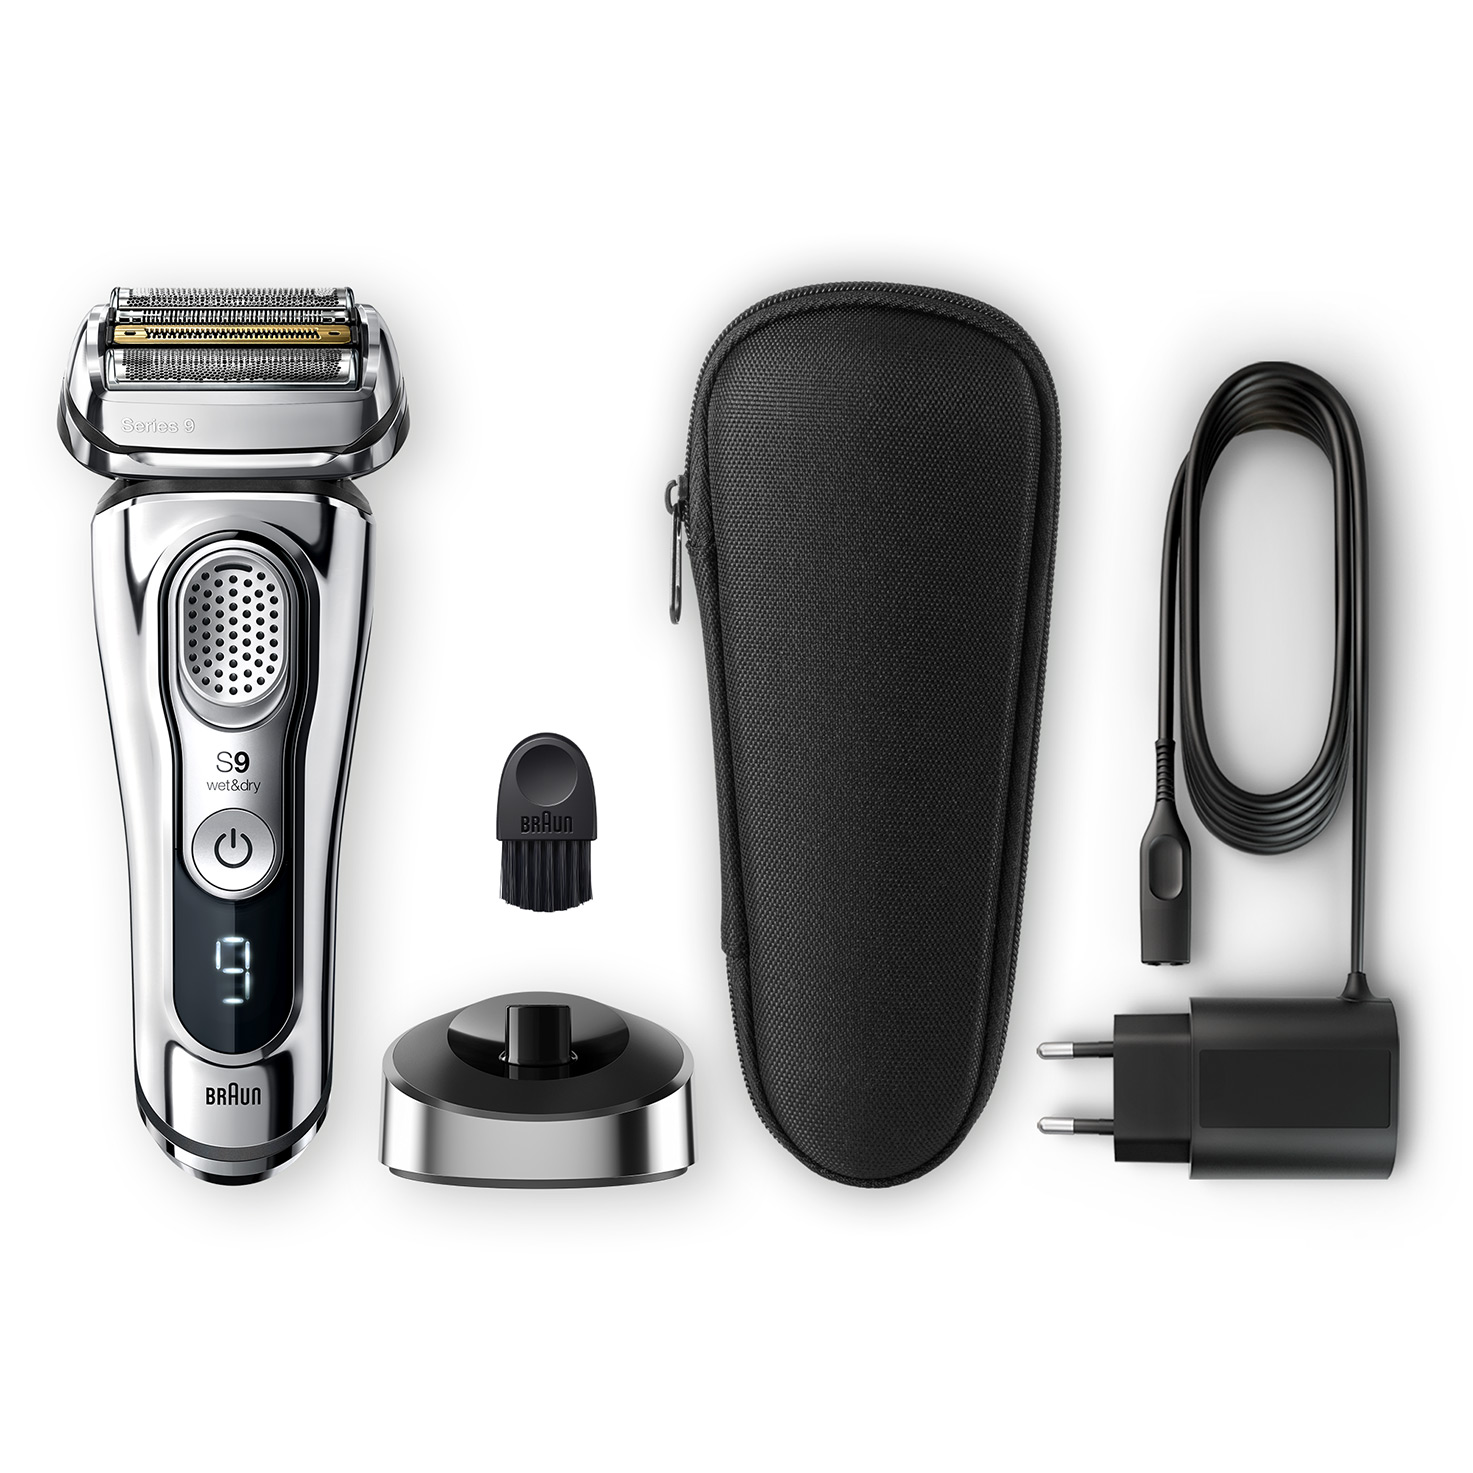 Series 9 9355s shaver - What´s in the box